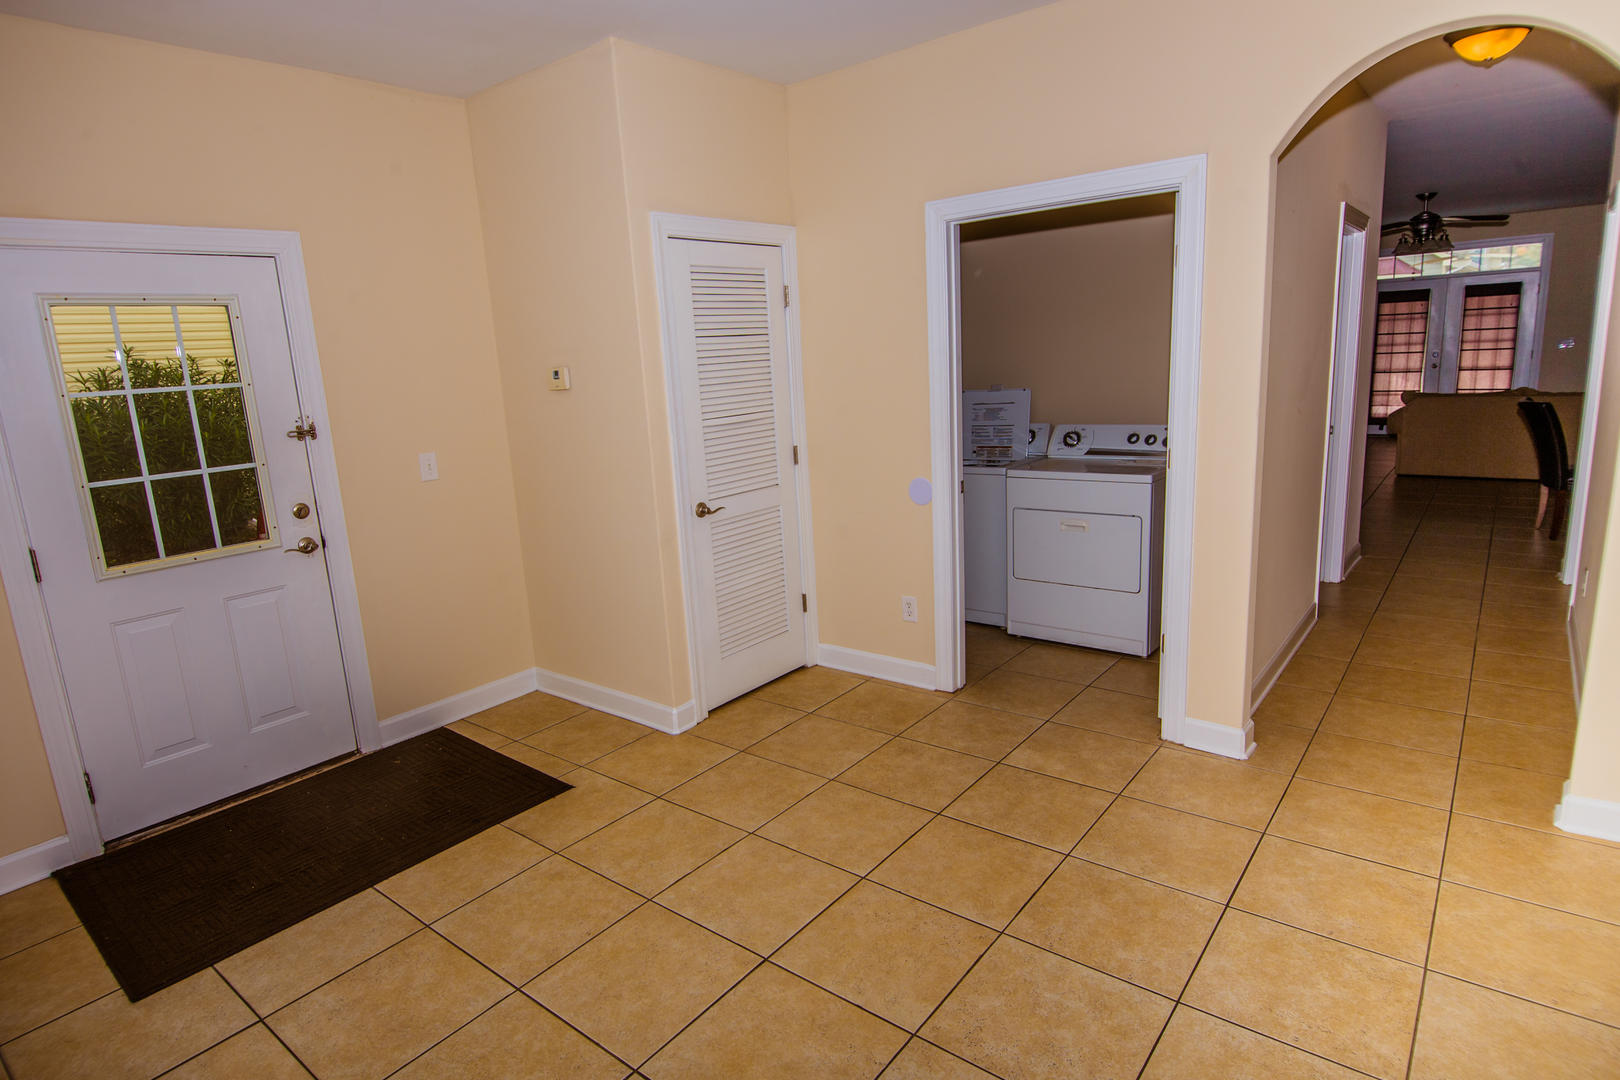 Ocean Breeze Cottage - Entryway and Laundry Area